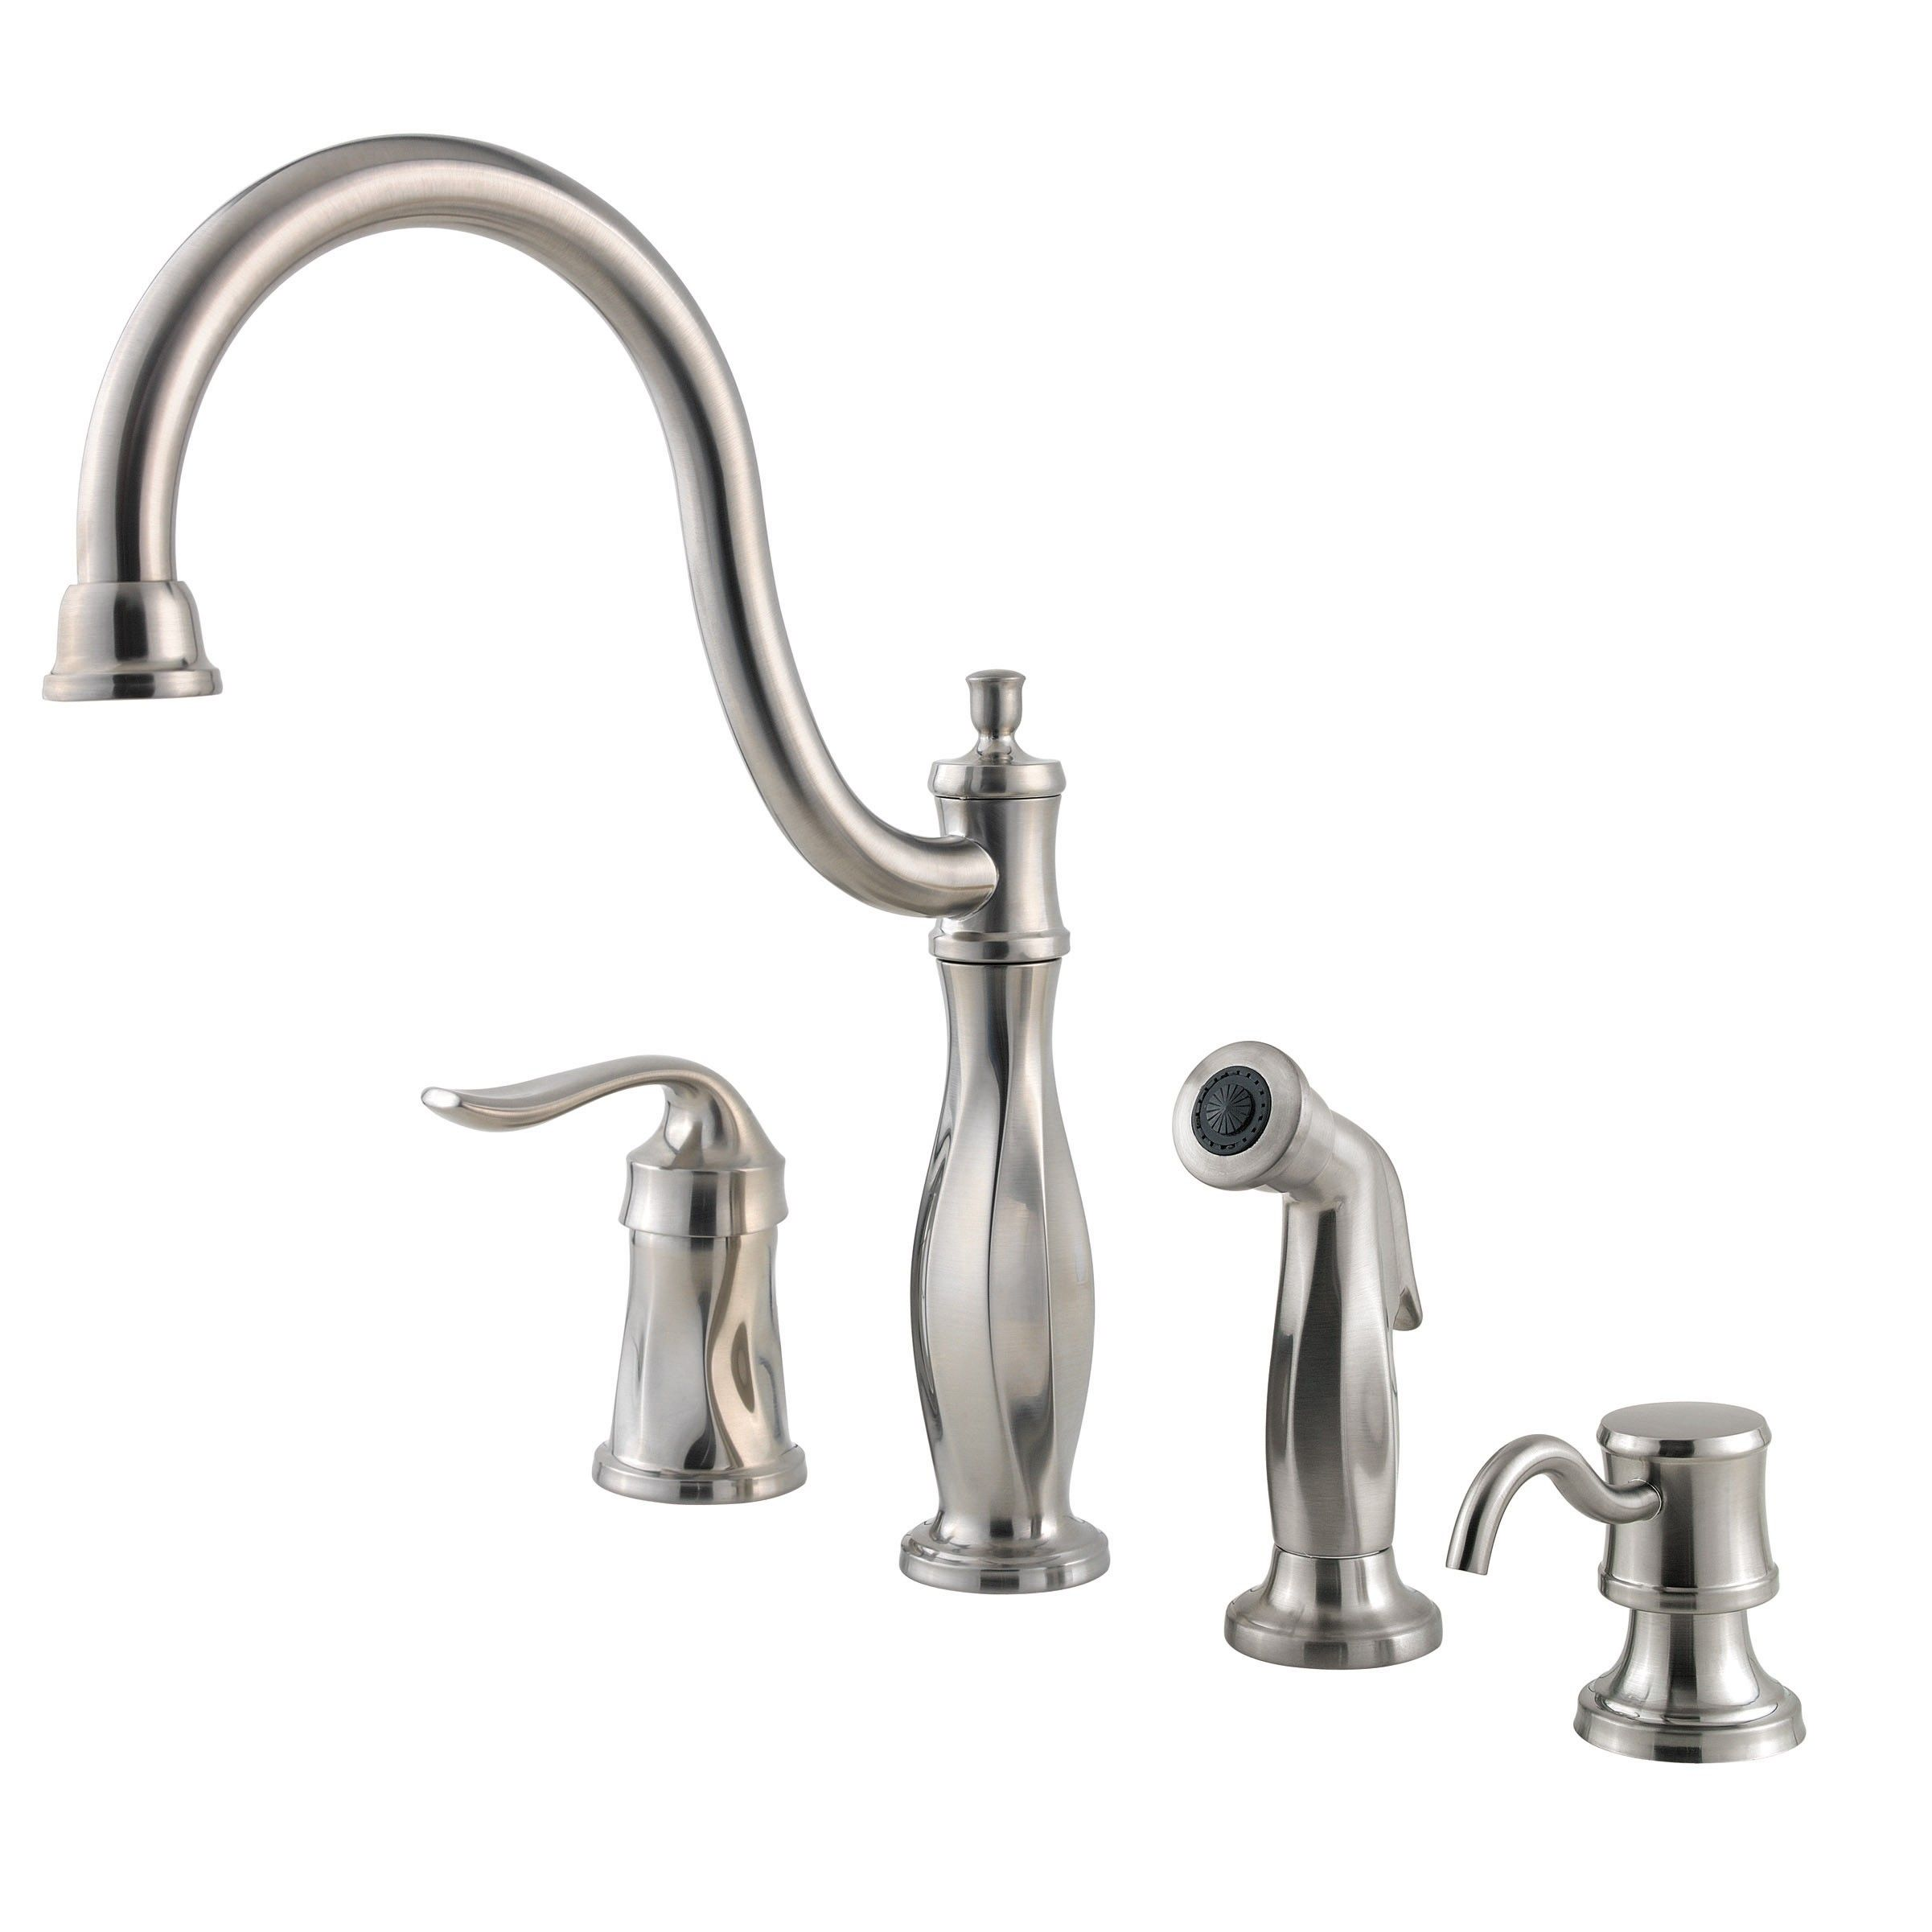 best california faucet chicago price moen menards delta gallery hands free faucets sink and reviews pfister kitchen brands fisher